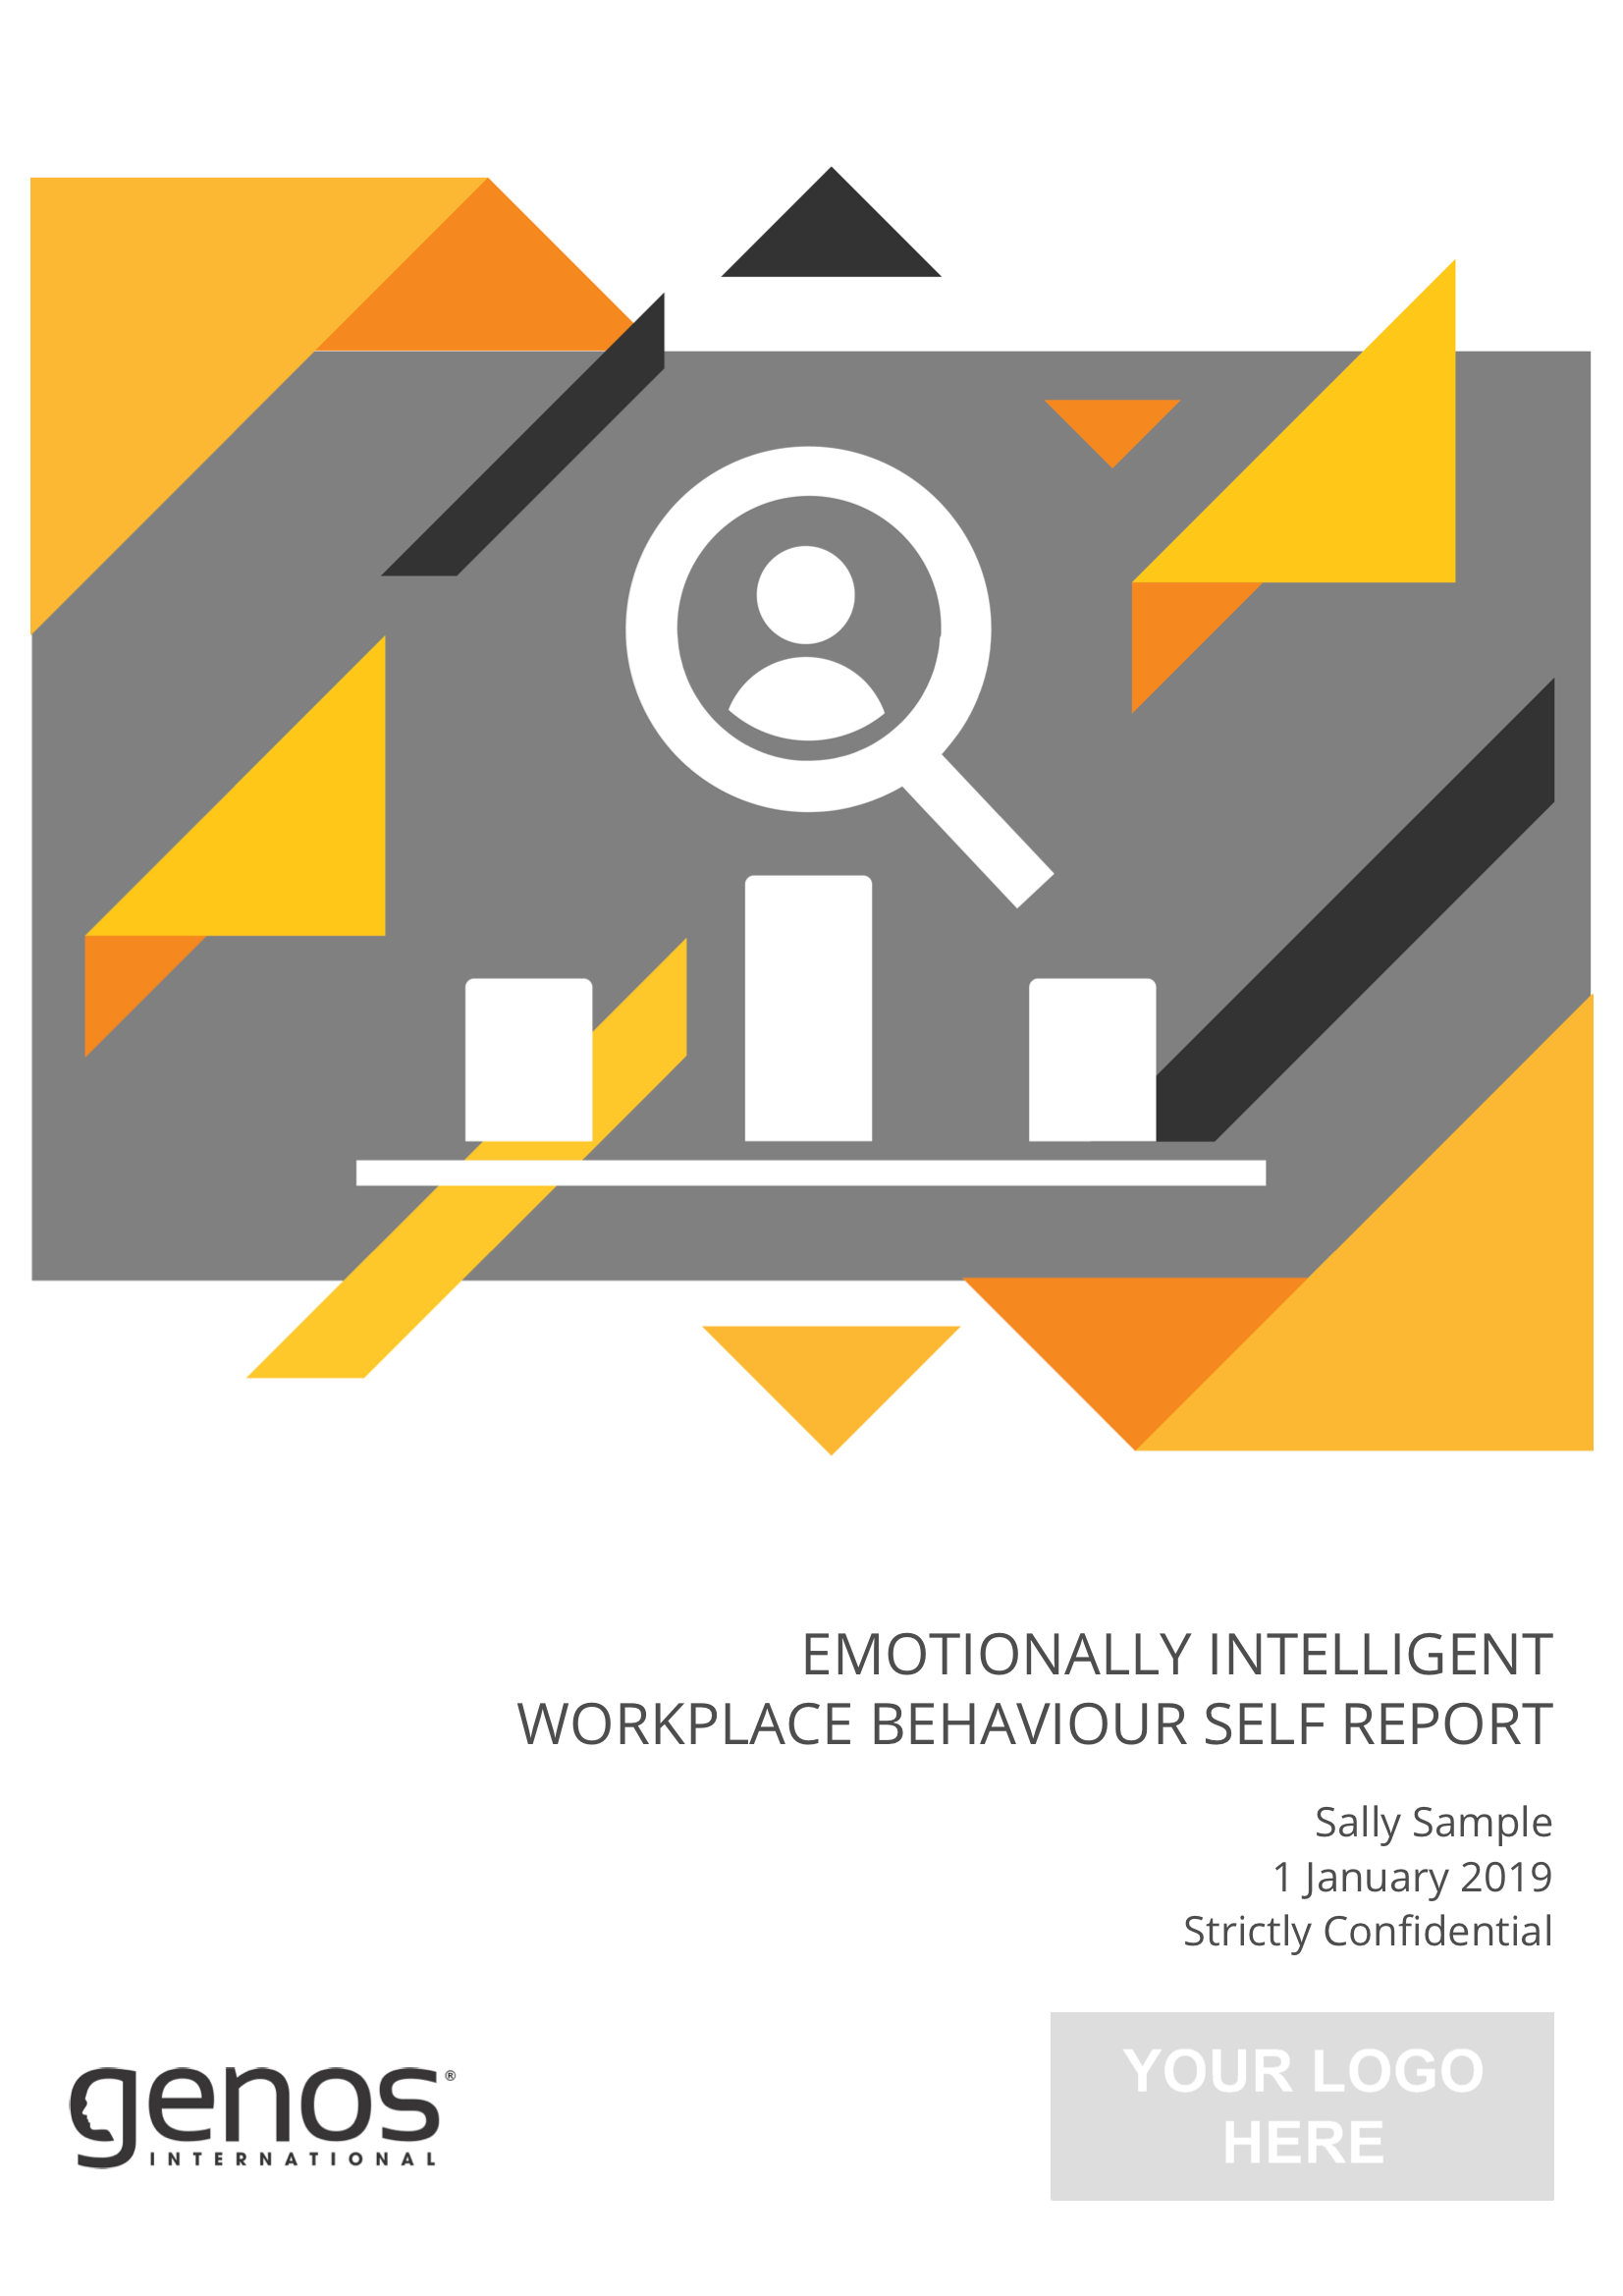 Emotionally Intelligent Workplace Behaviour Self Report